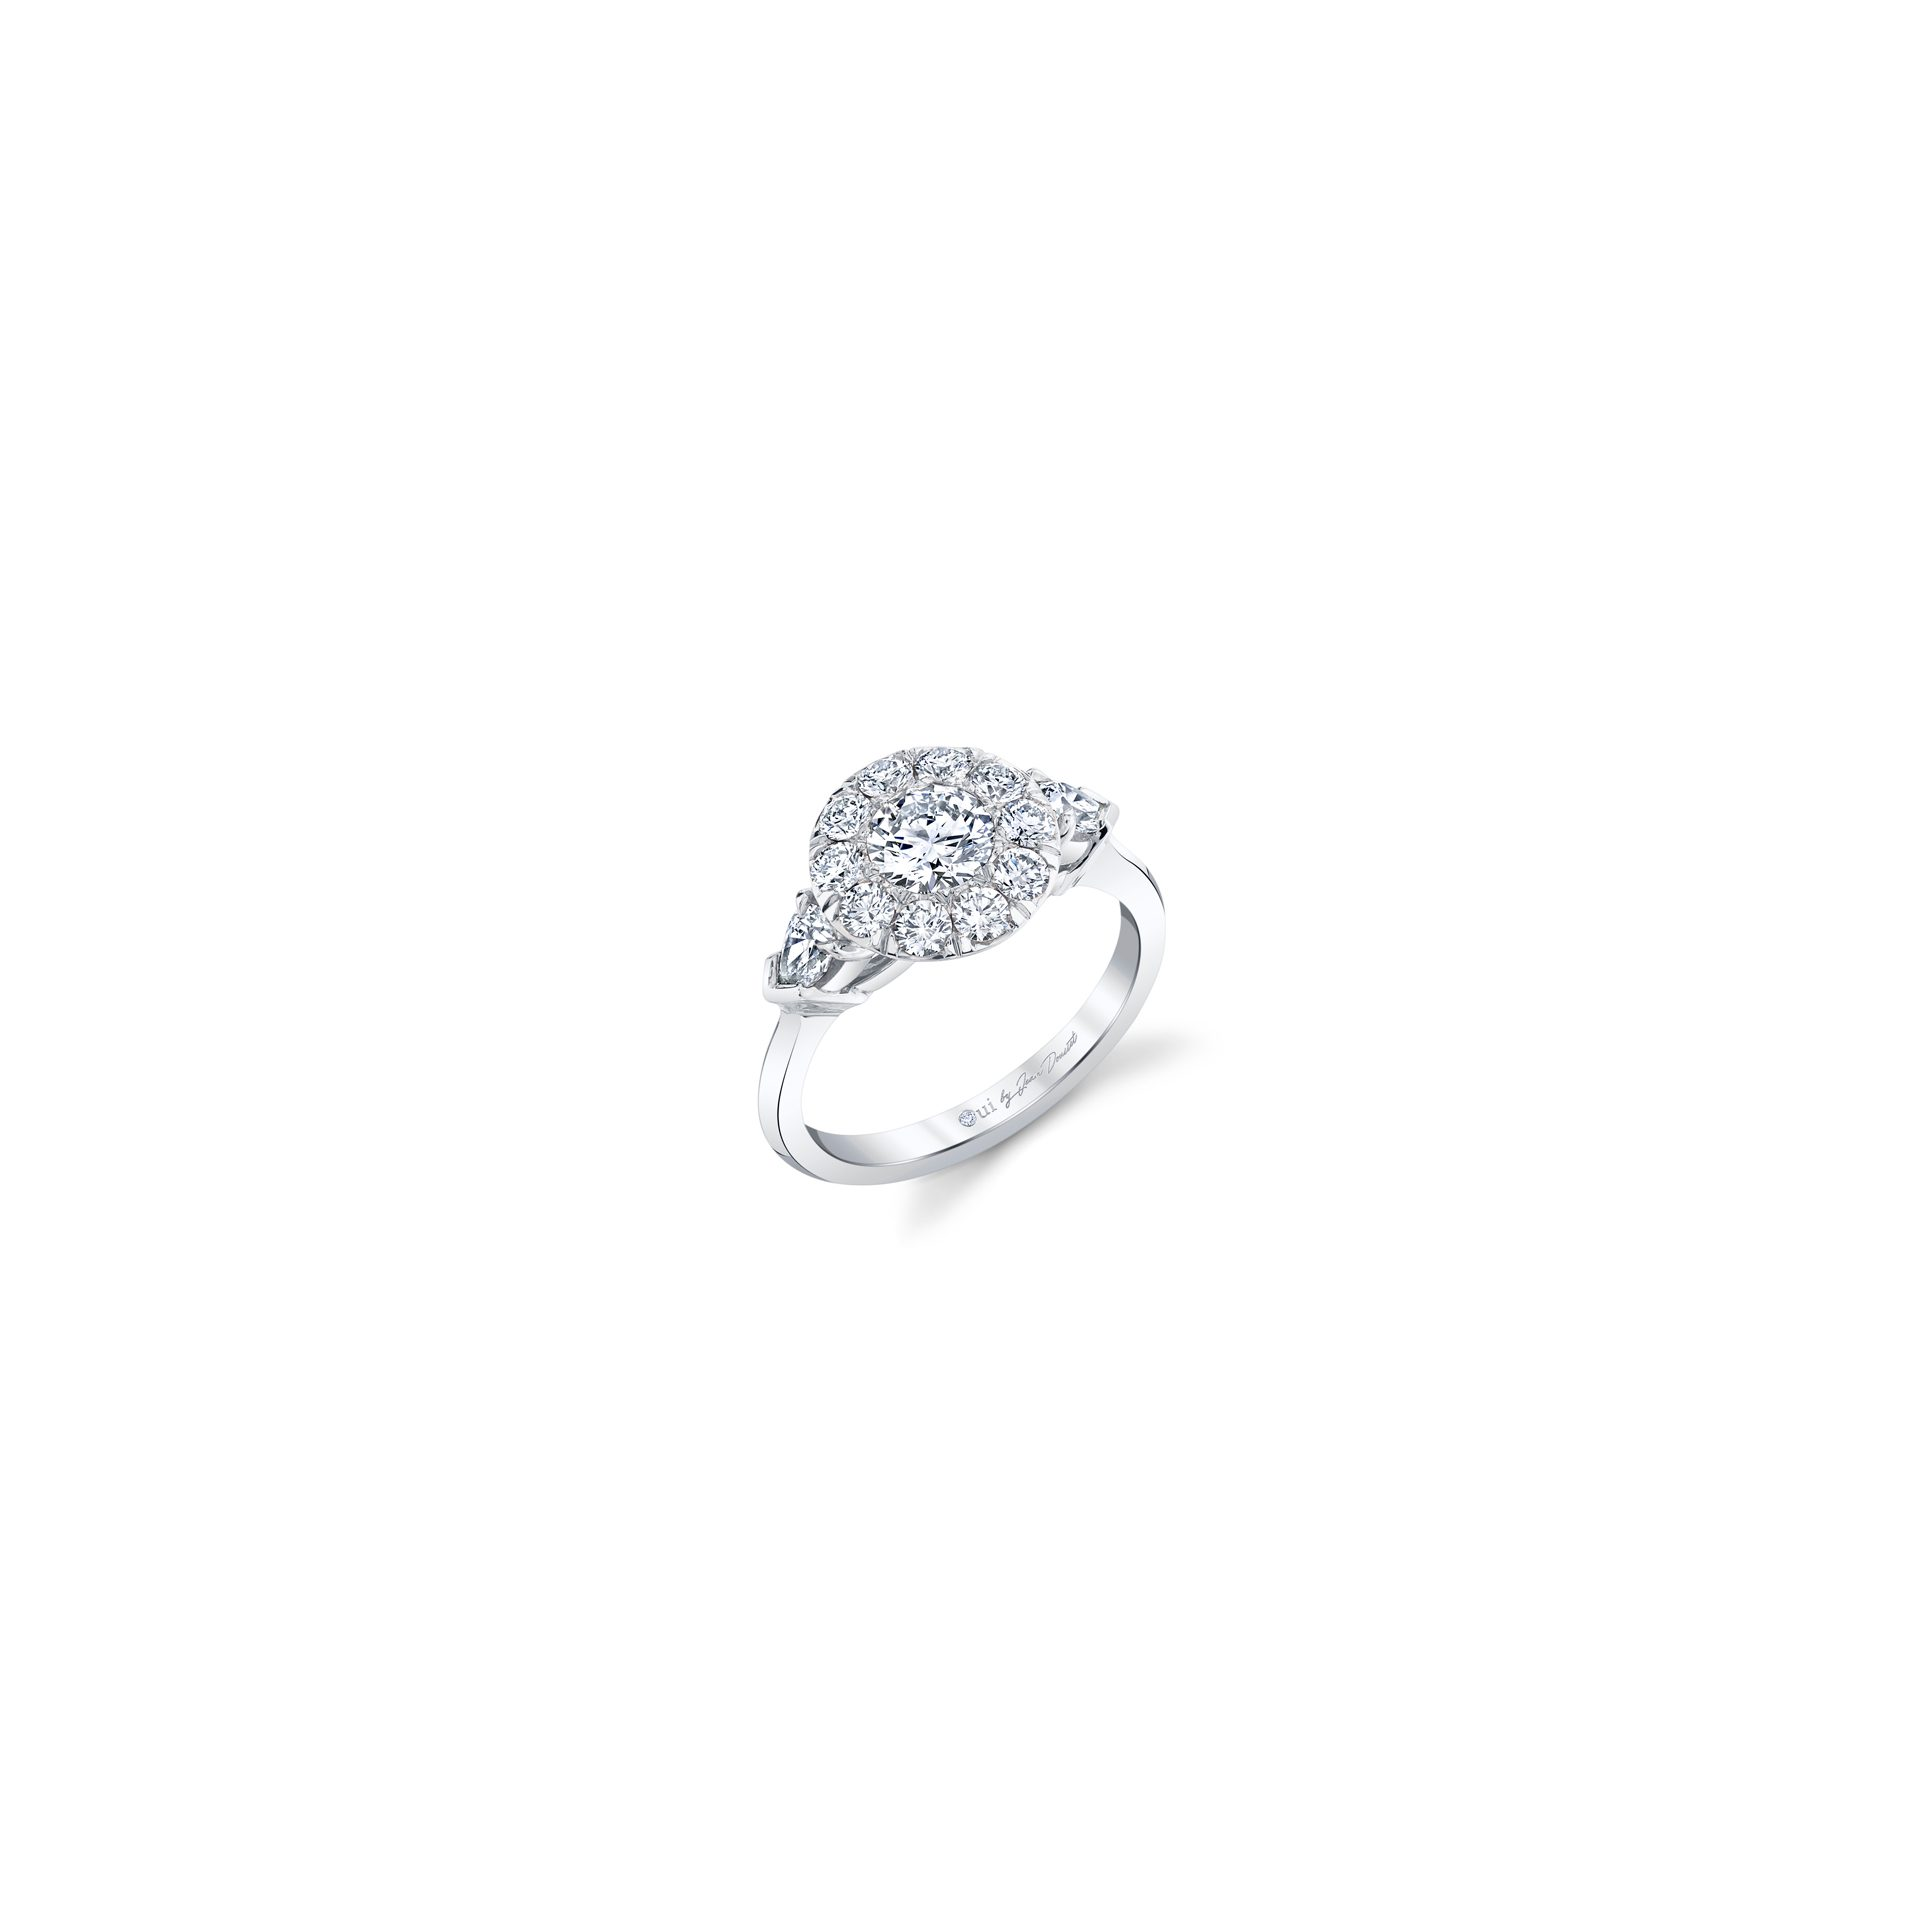 Clementine Round Brilliant Seamless Solitaire™ Three Stone Engagement Ring with pear-shaped diamond side stones in 18k White Gold Front View by Oui by Jean Dousset